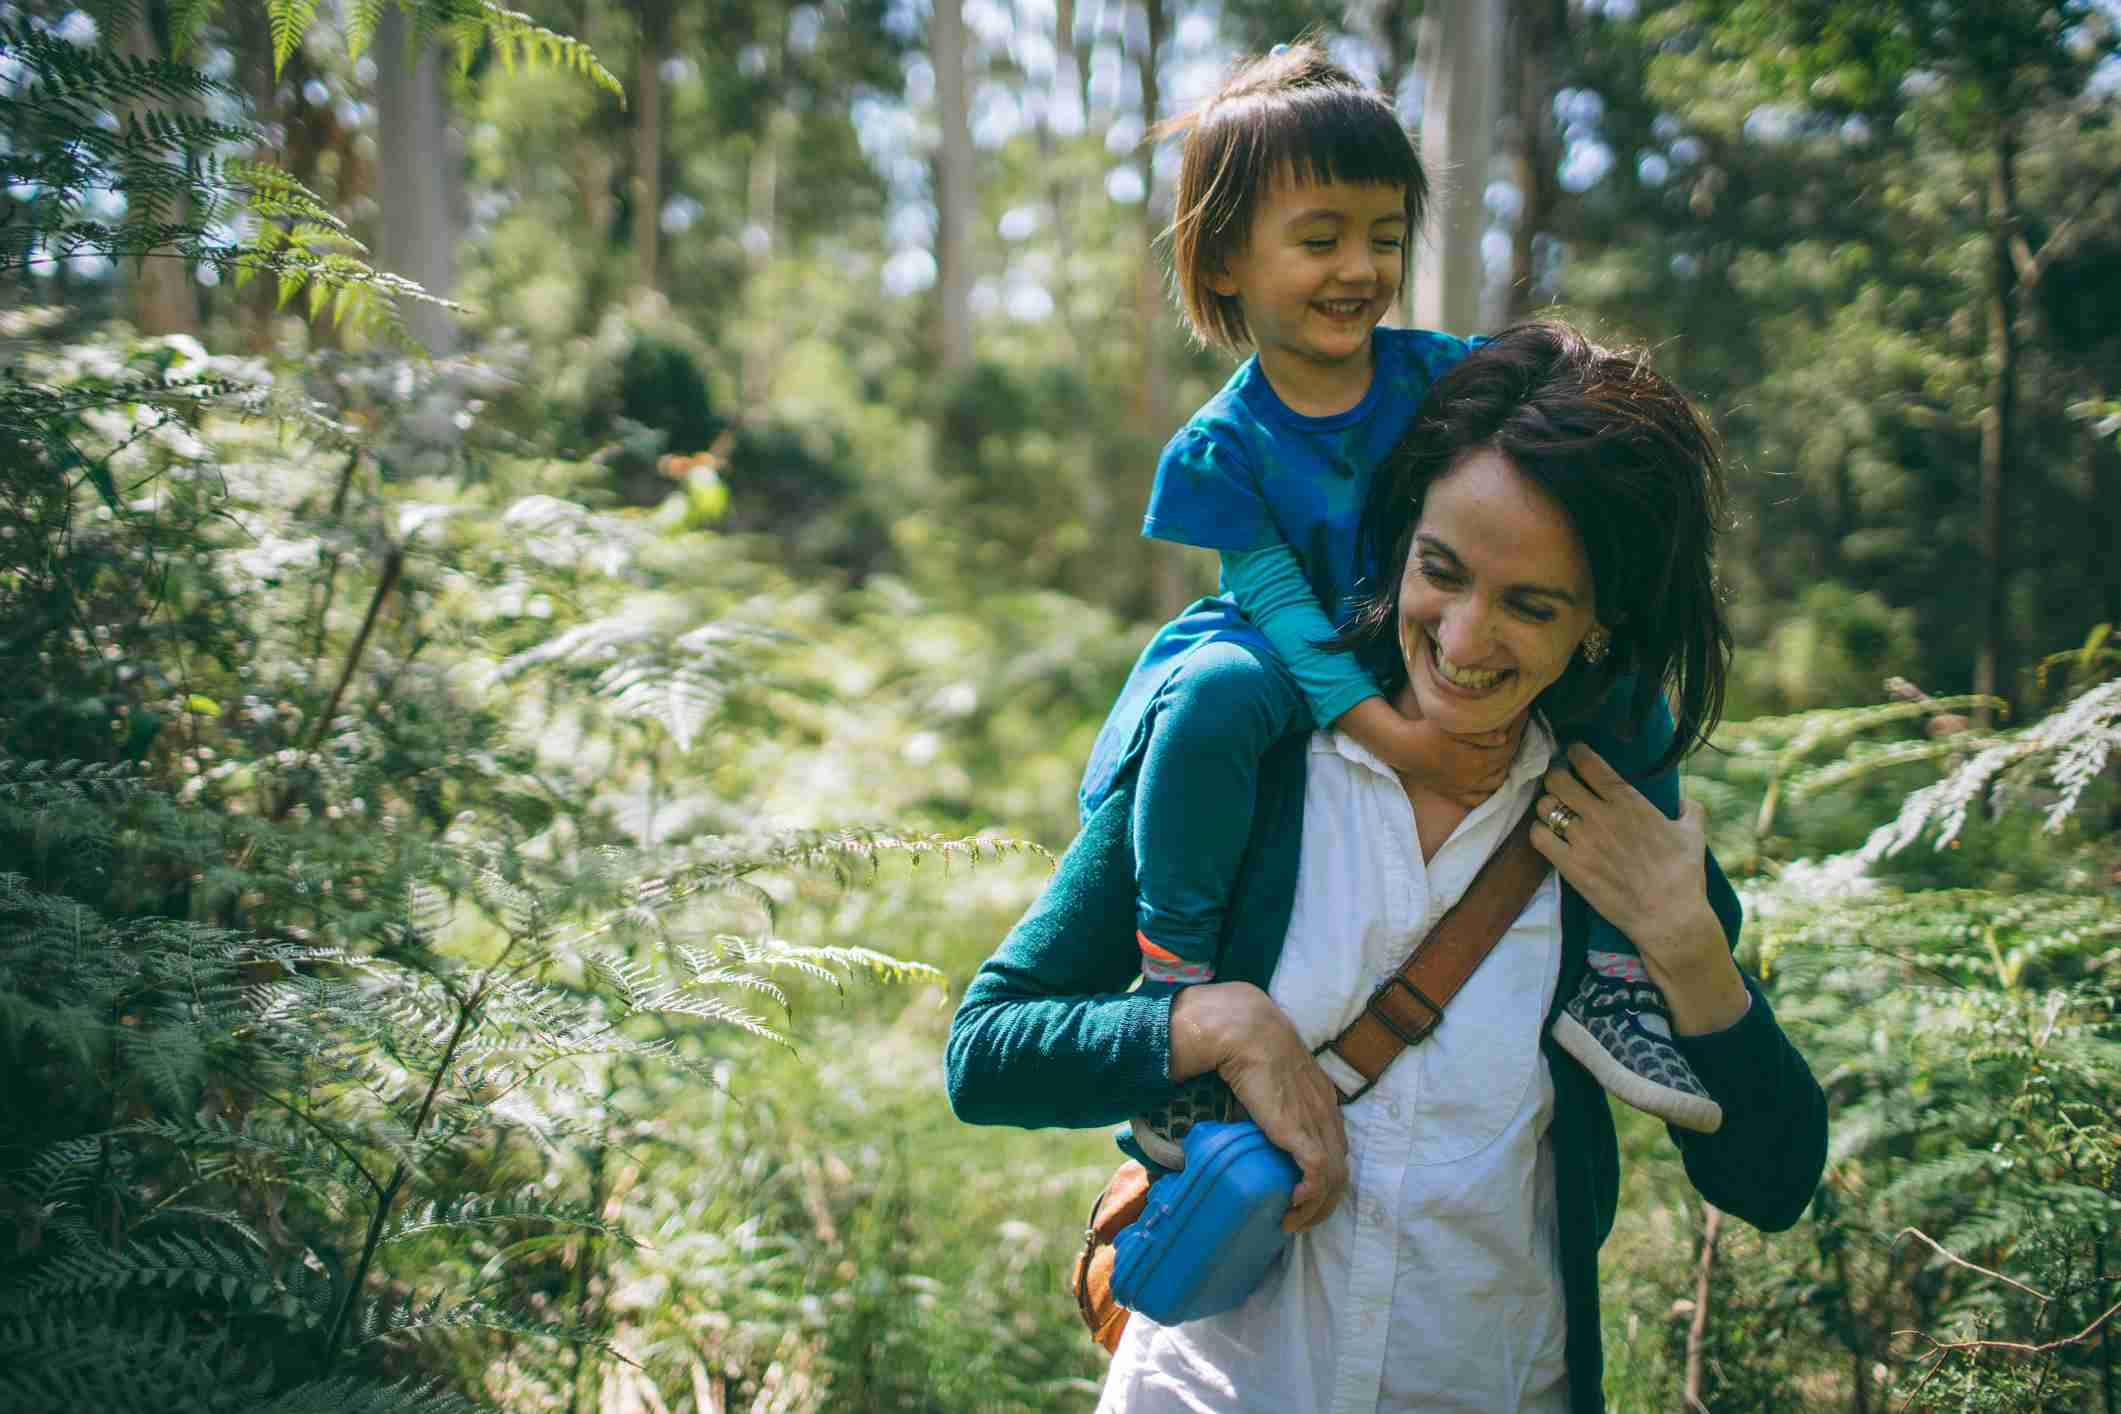 Mother hiking with her child in forest